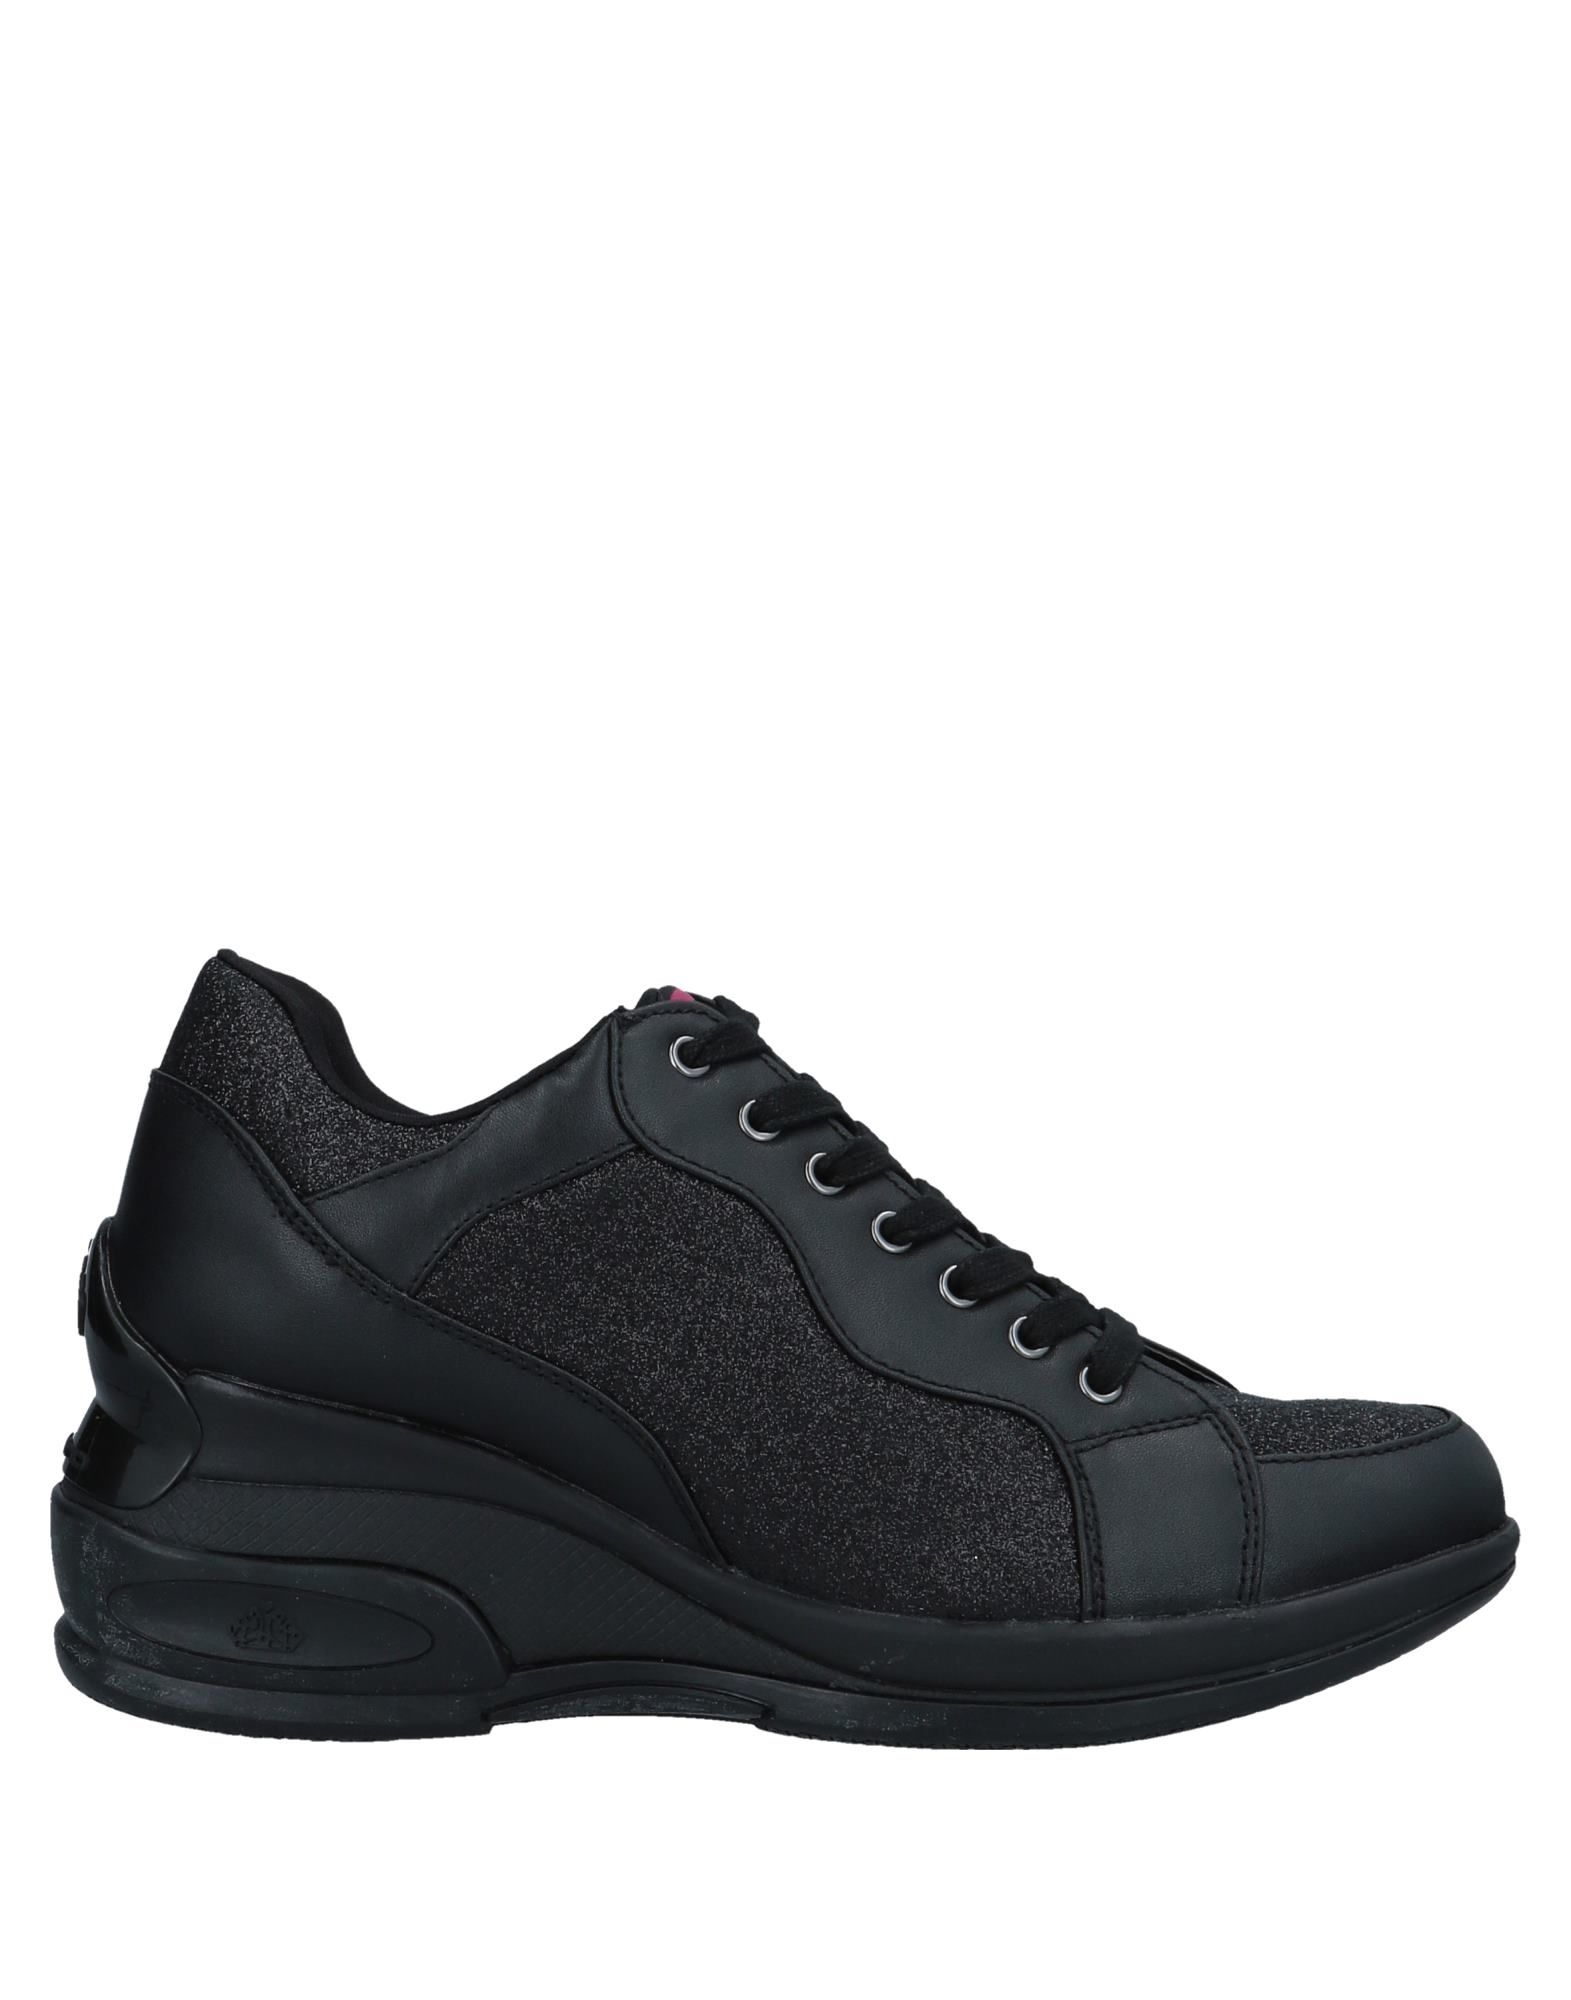 Fornarina Sneakers - Women  Fornarina Sneakers online on  Women Australia - 11552302QC d9036a